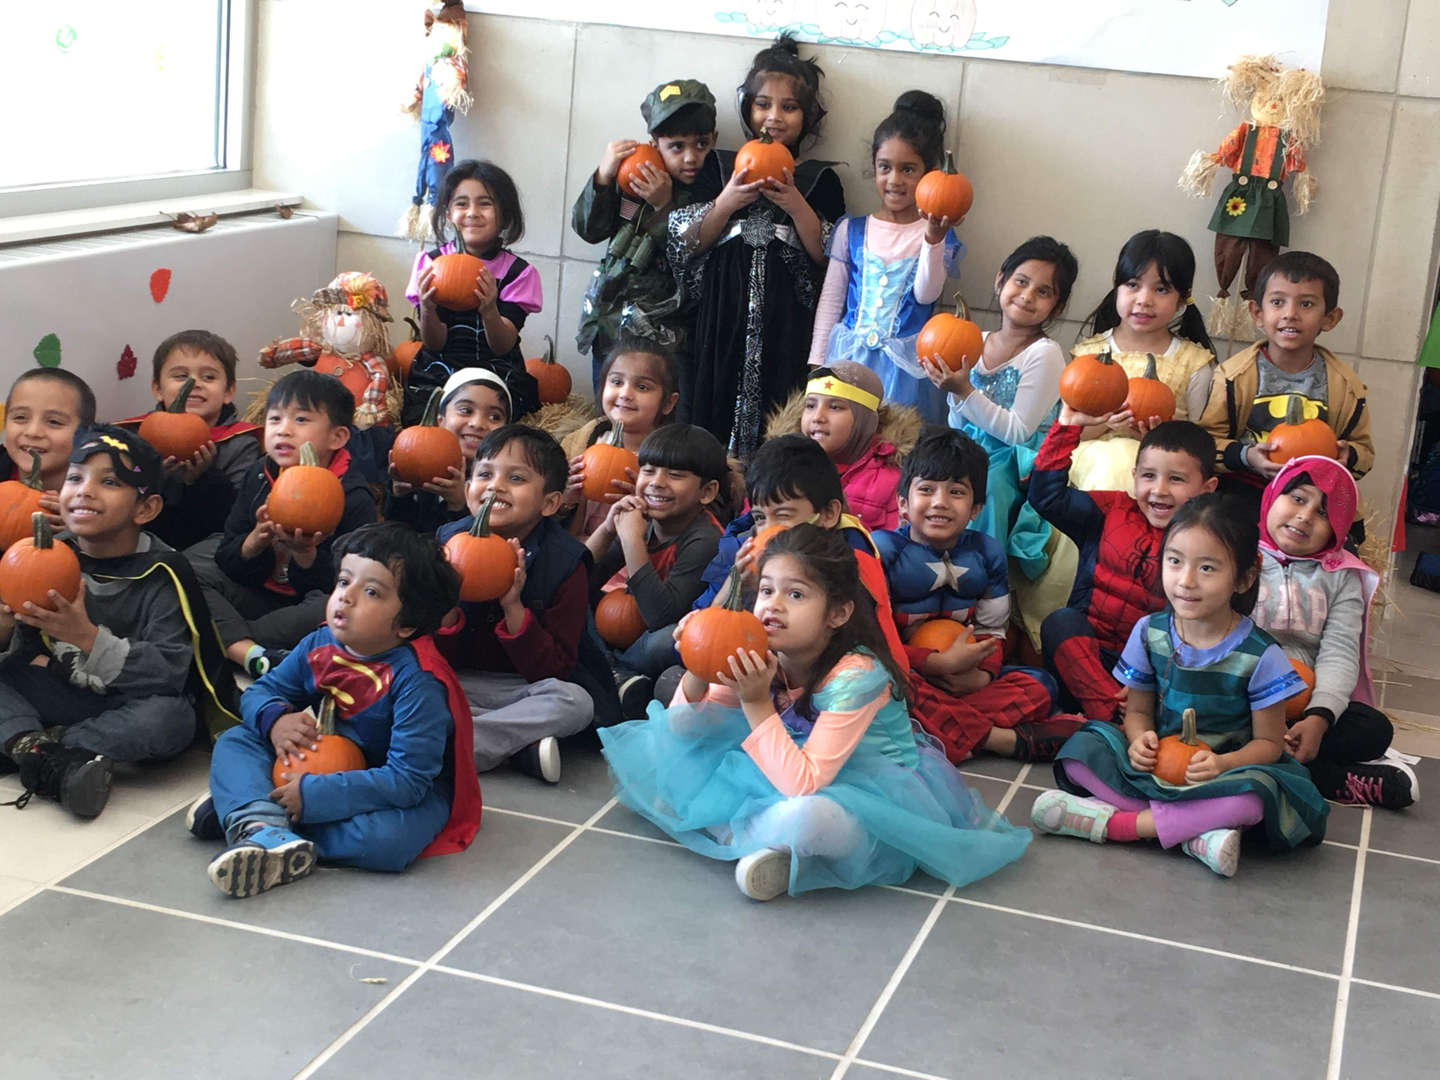 Teachers and students dressed up for halloween with pumpkins